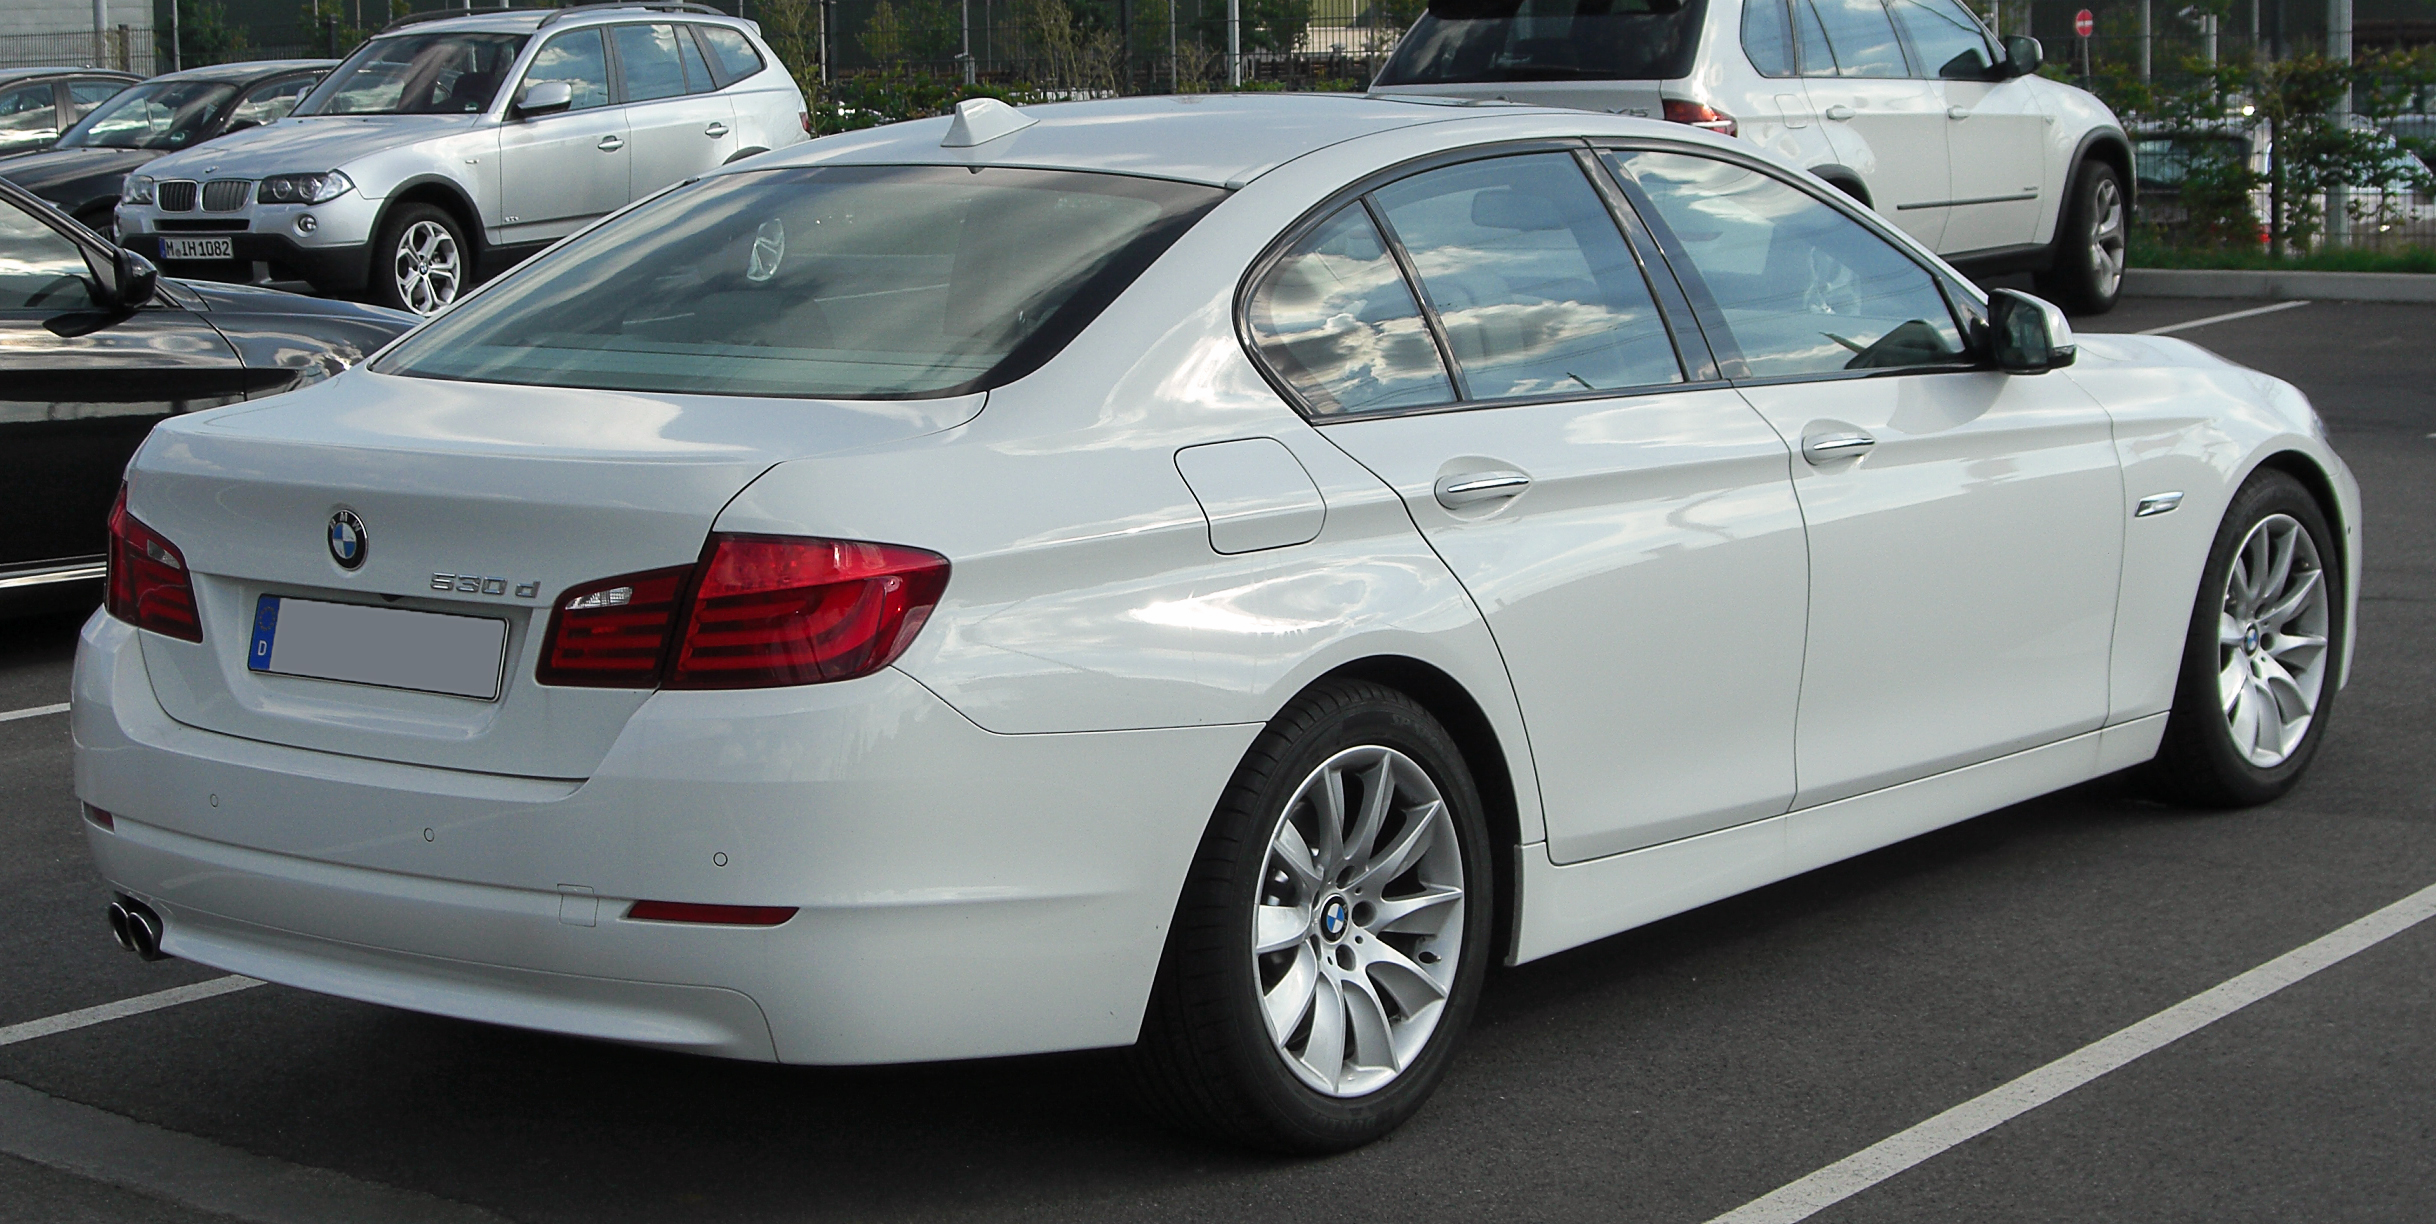 File Bmw 530d F10 Rear 20100821 Jpg Wikimedia Commons